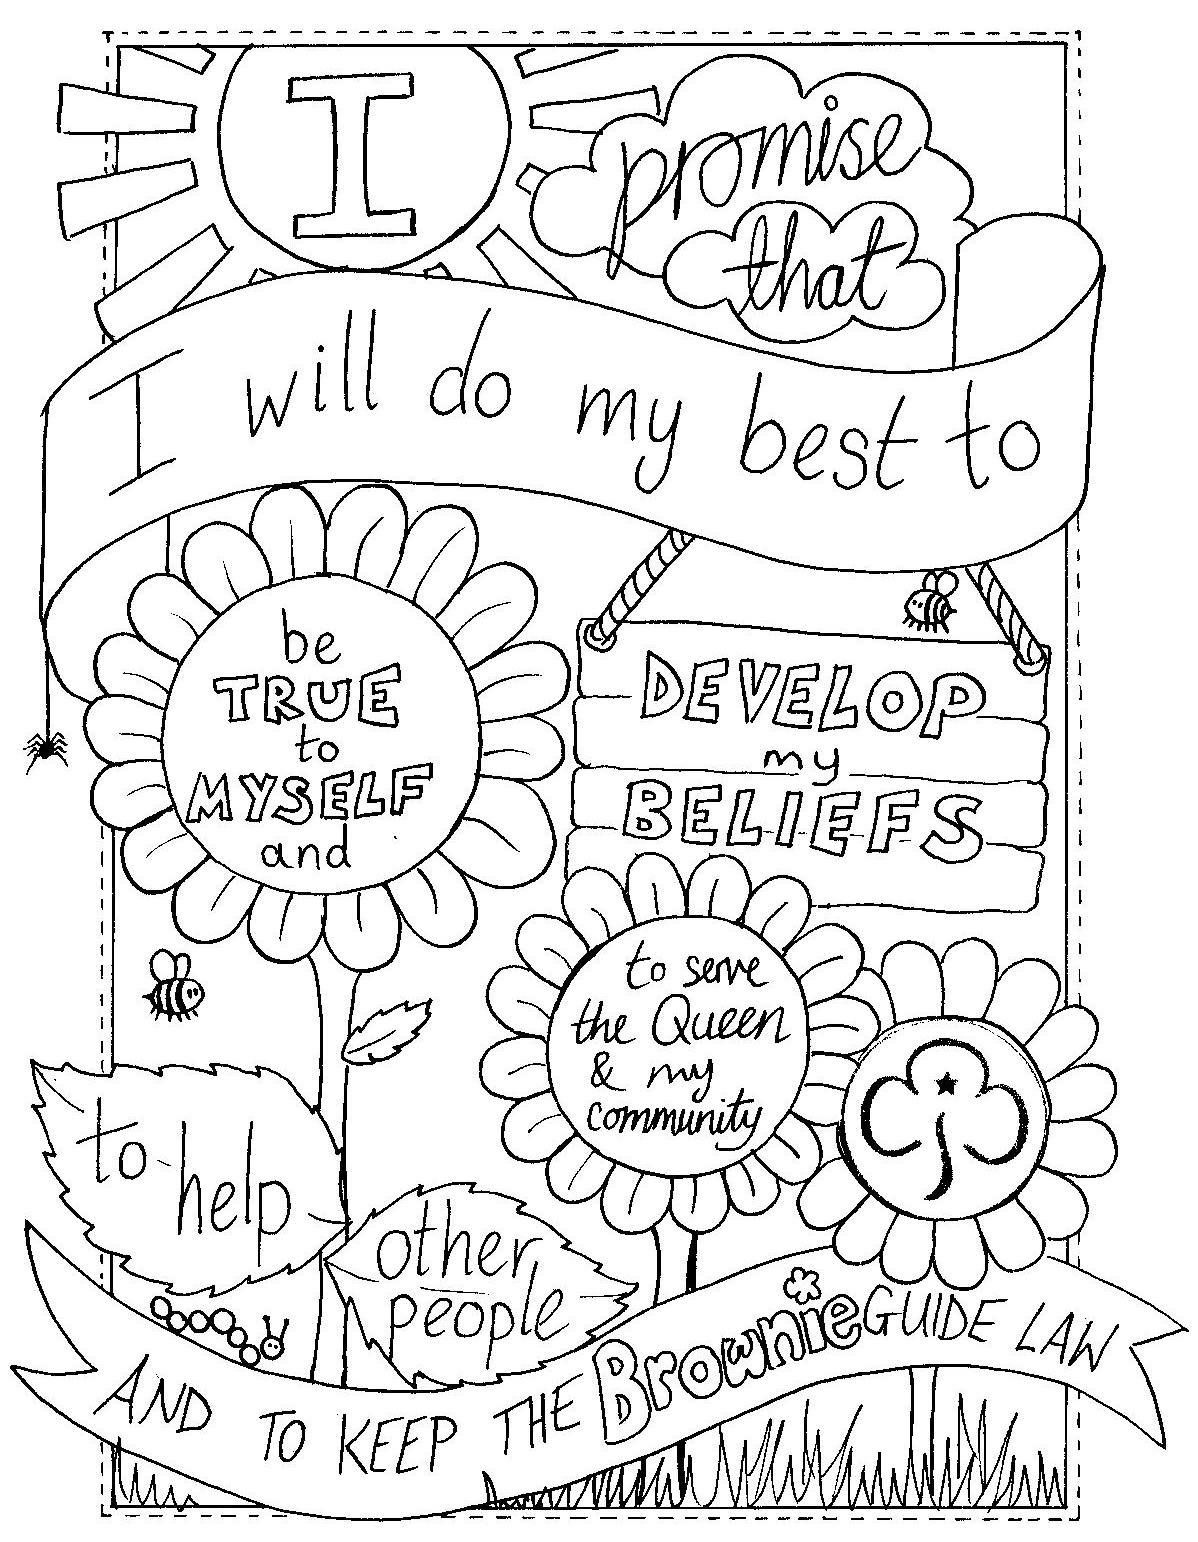 Girl Scout Law Coloring Pages  Gallery 20l - To print for your project